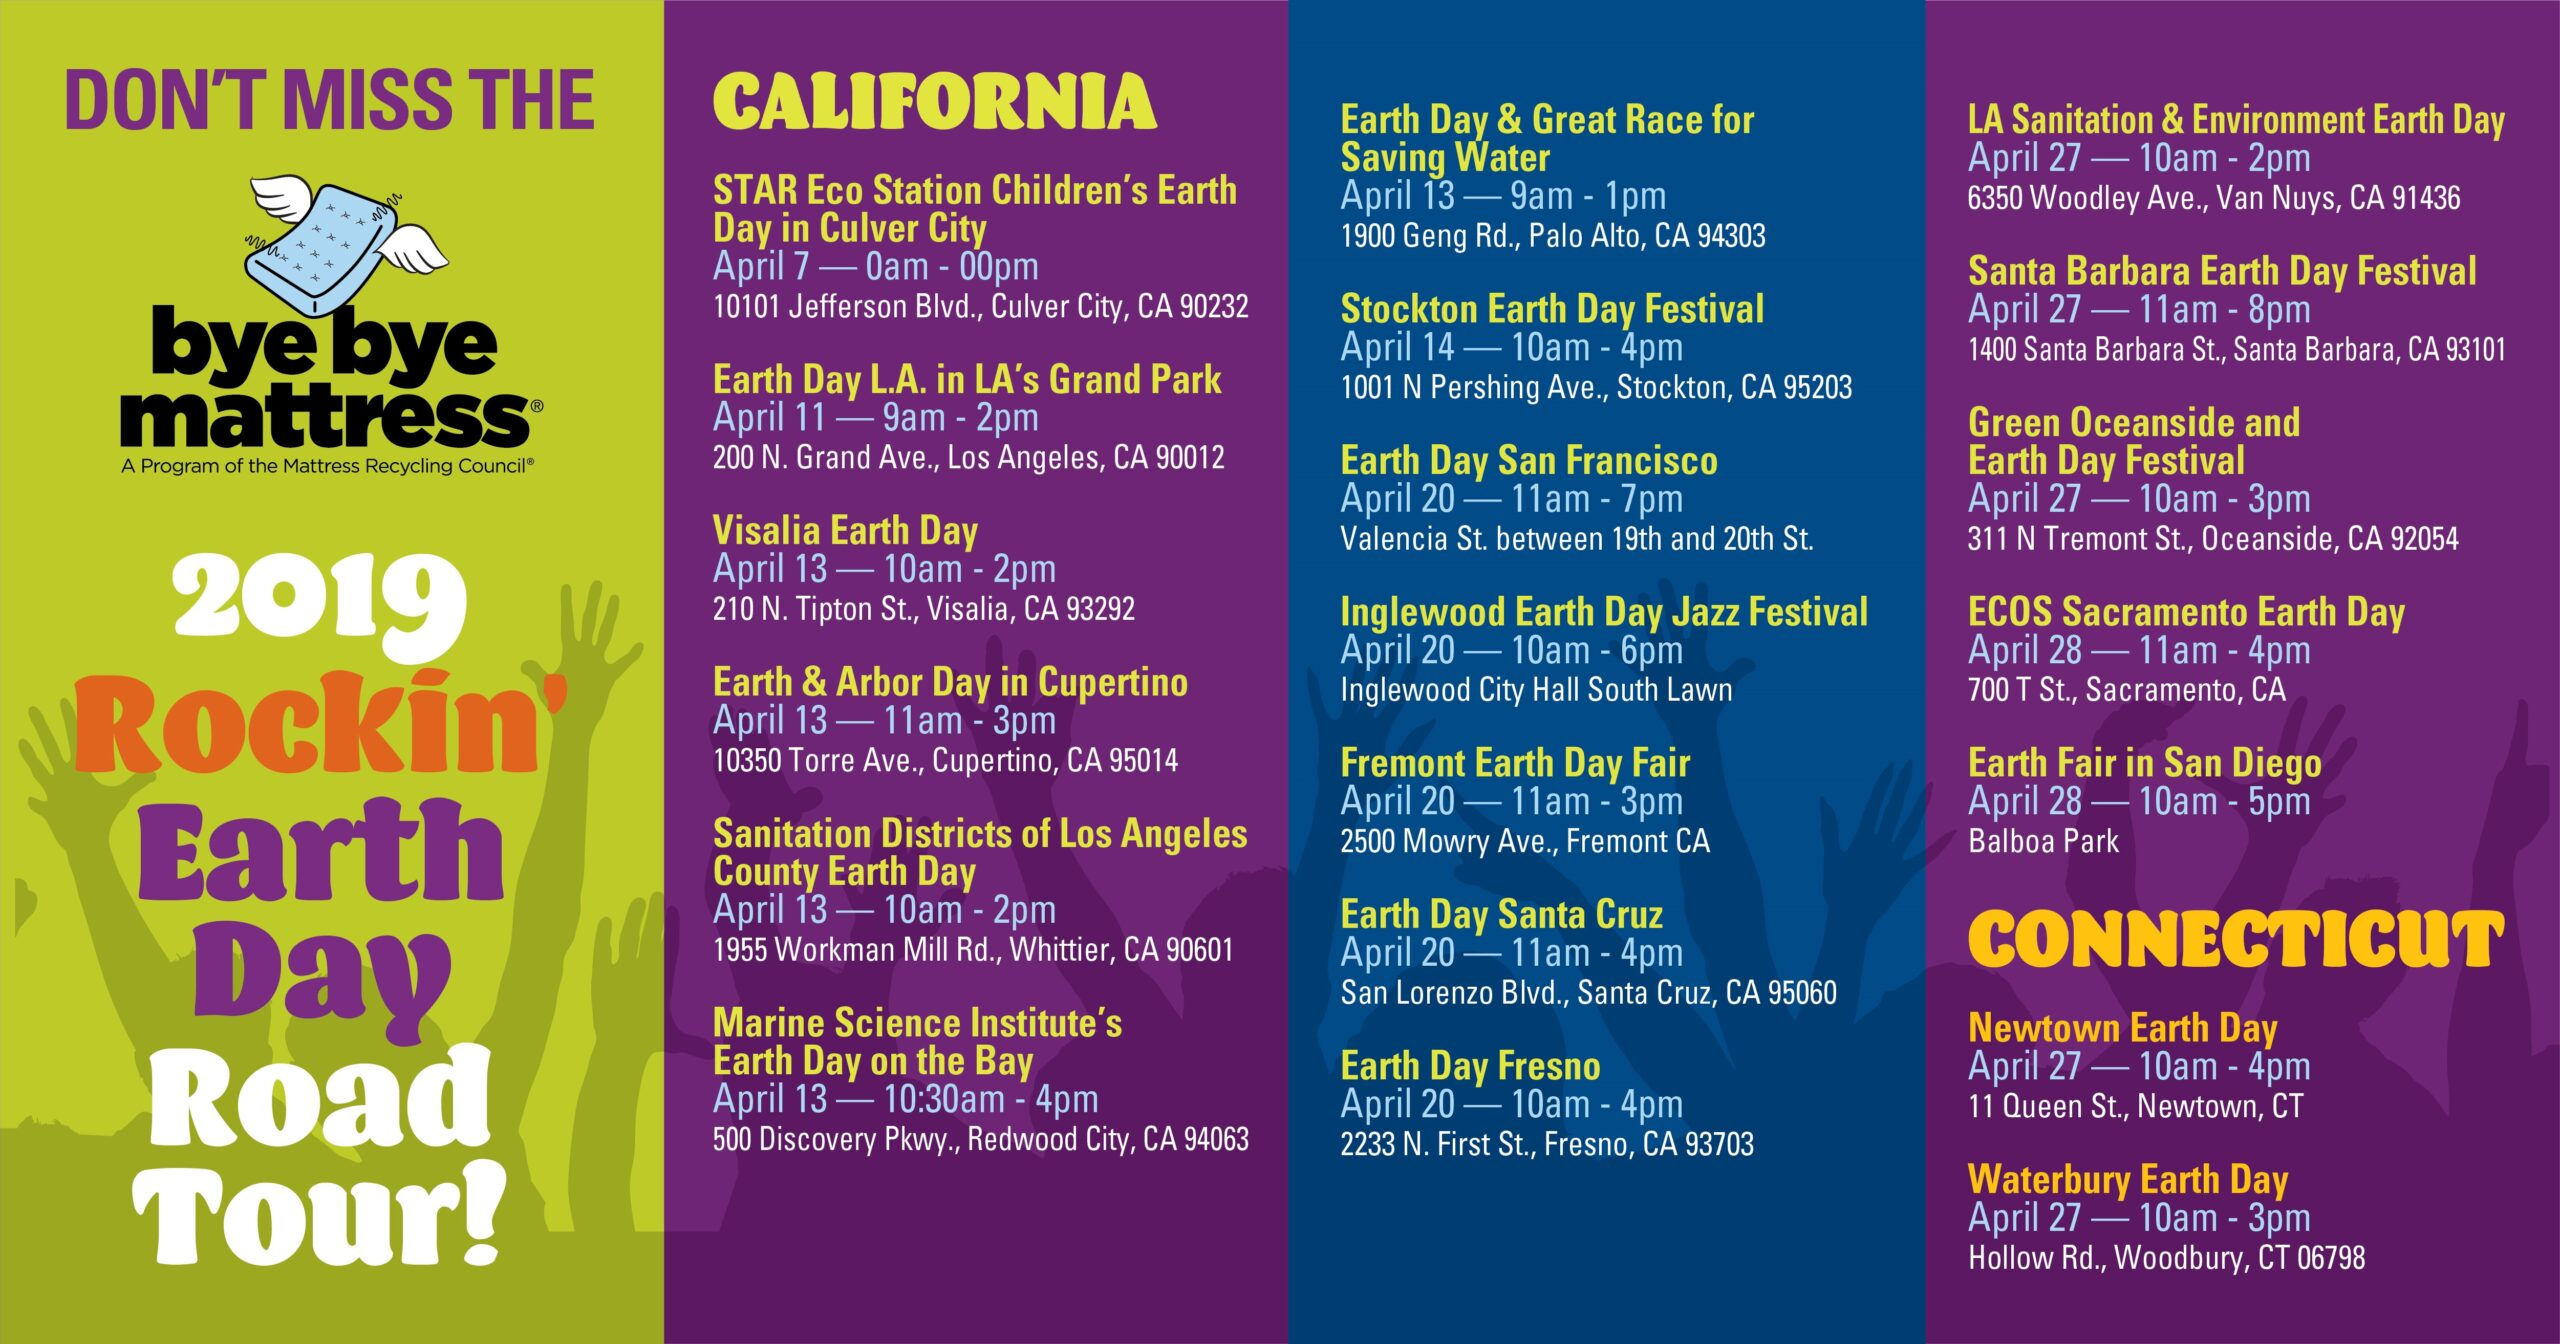 Social media creative listing the events, locations, dates and times of Earth Day events for the Rockin' Earth Day Road Tour.